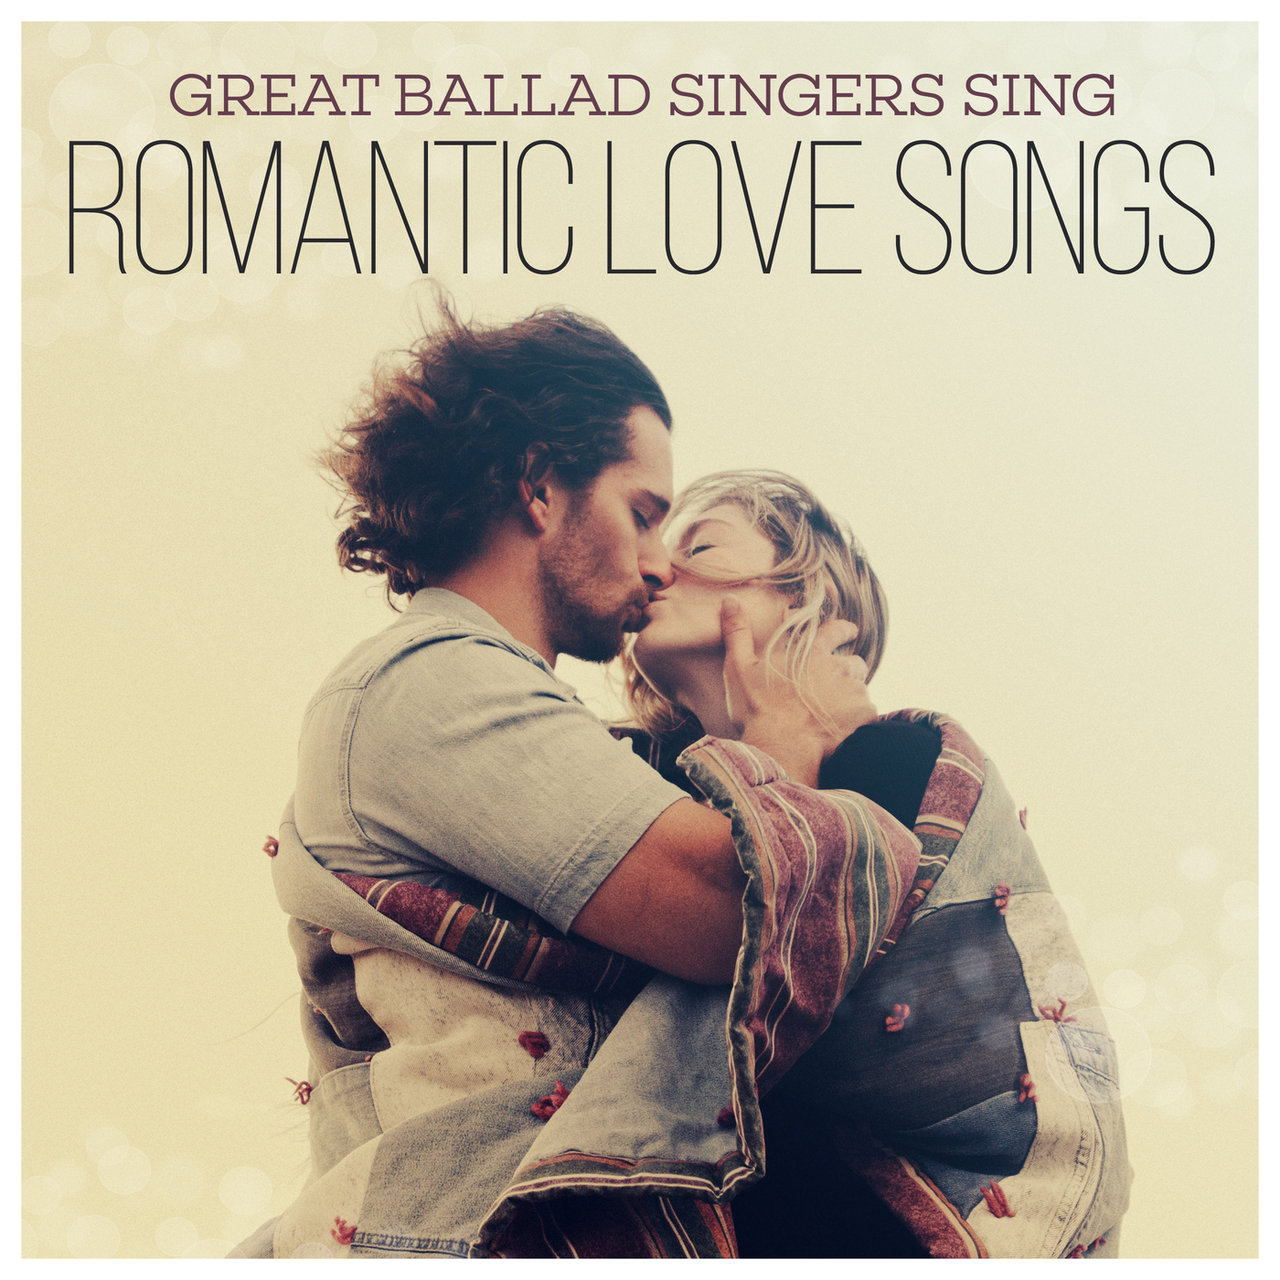 Great Ballad Singers Sing Romantic Love Songs